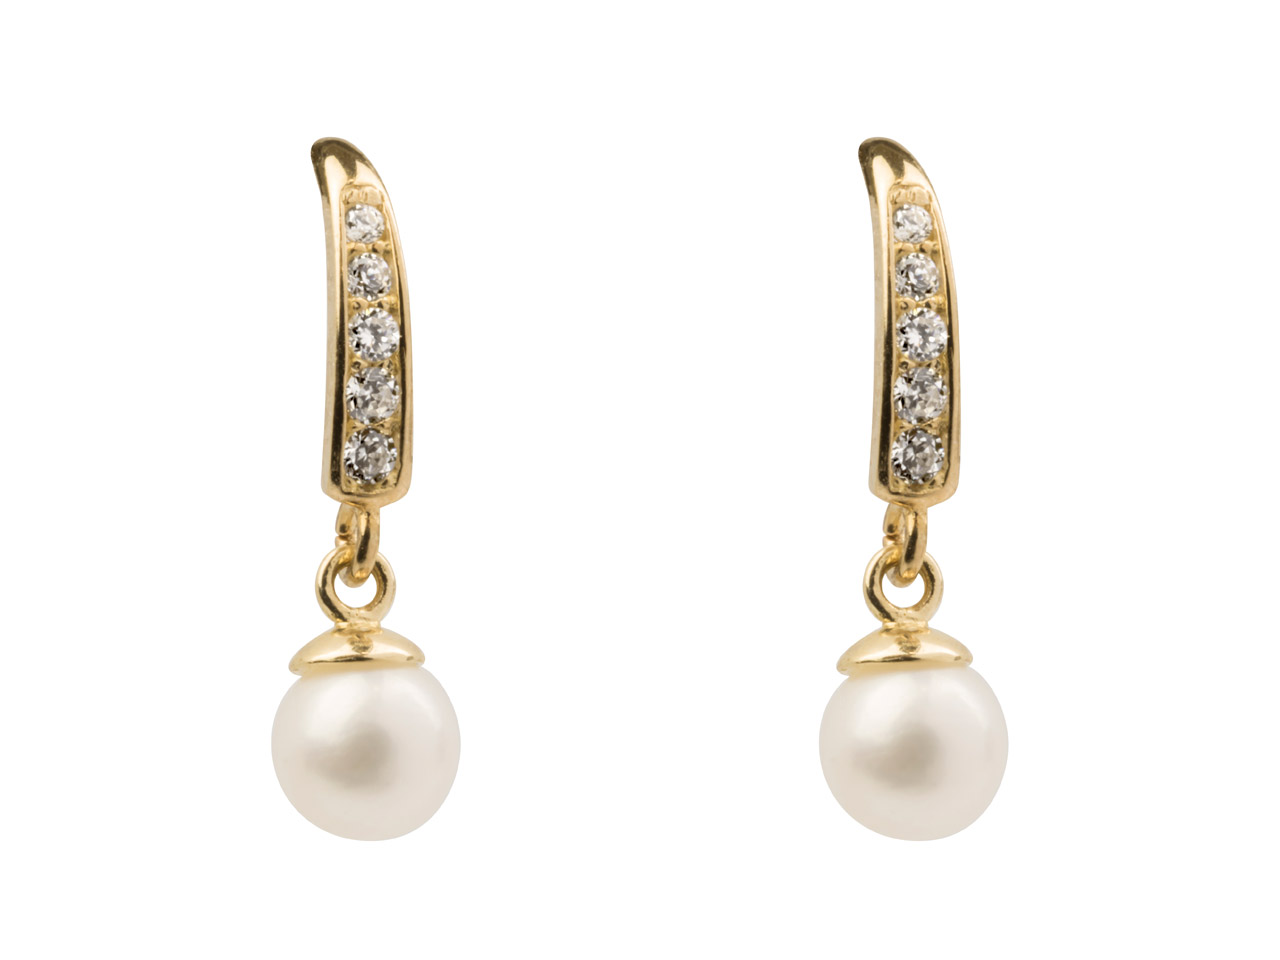 9ct Yellow Gold Drop Earrings With 4mm Fresh Water Pearl And          Cubic Zirconia